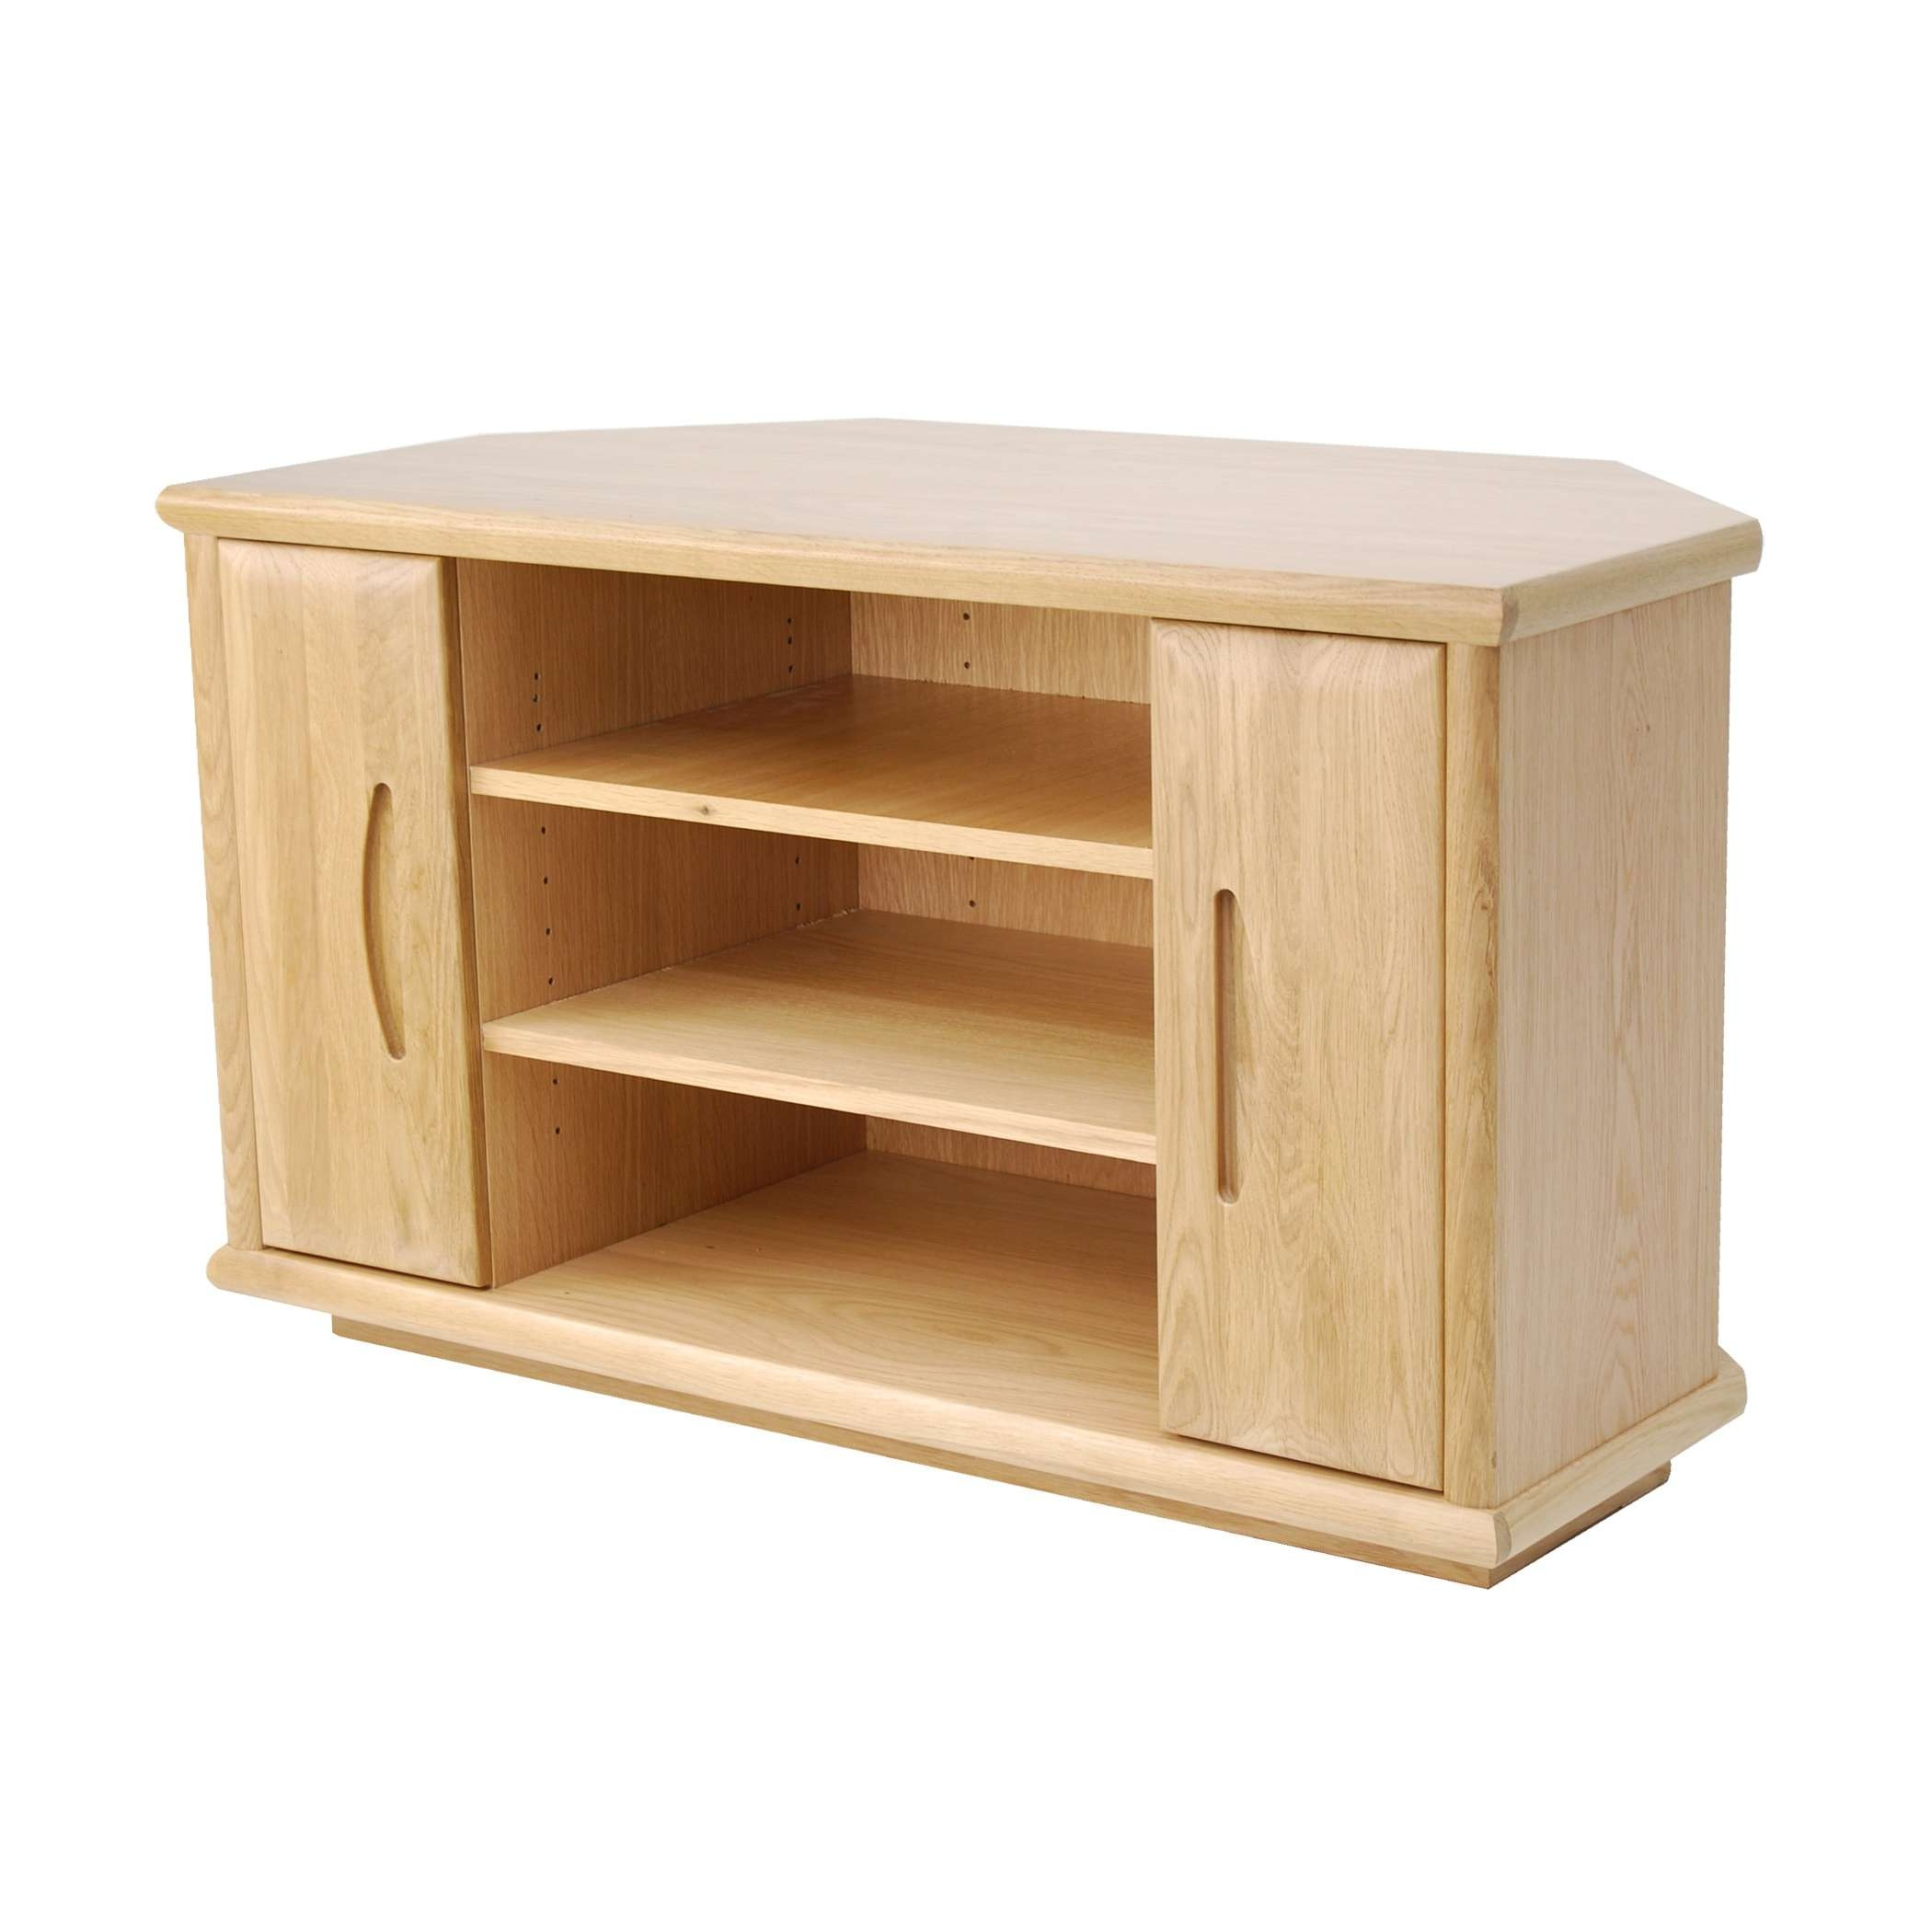 Oak Corner Tv Stand | Gola Furniture Uk In Oak Tv Cabinets With Doors (View 17 of 20)